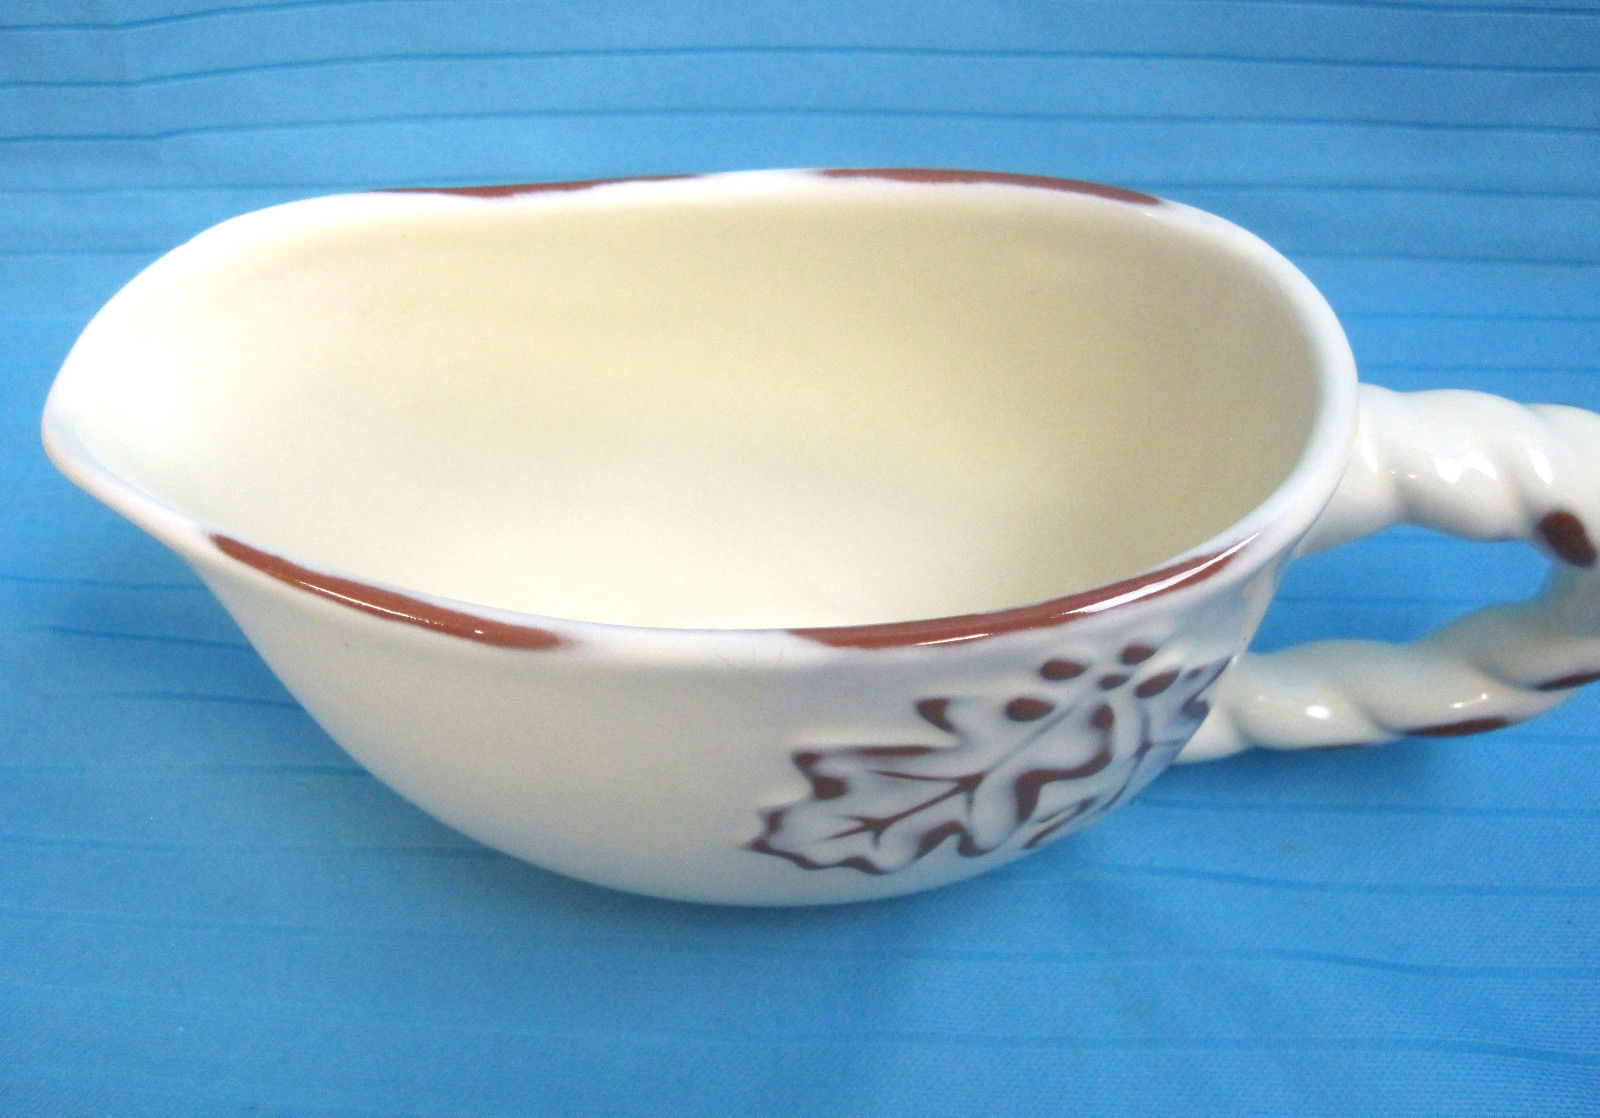 Terracotta Gravy Boat Pitcher Creamer by Home China Autumn Design